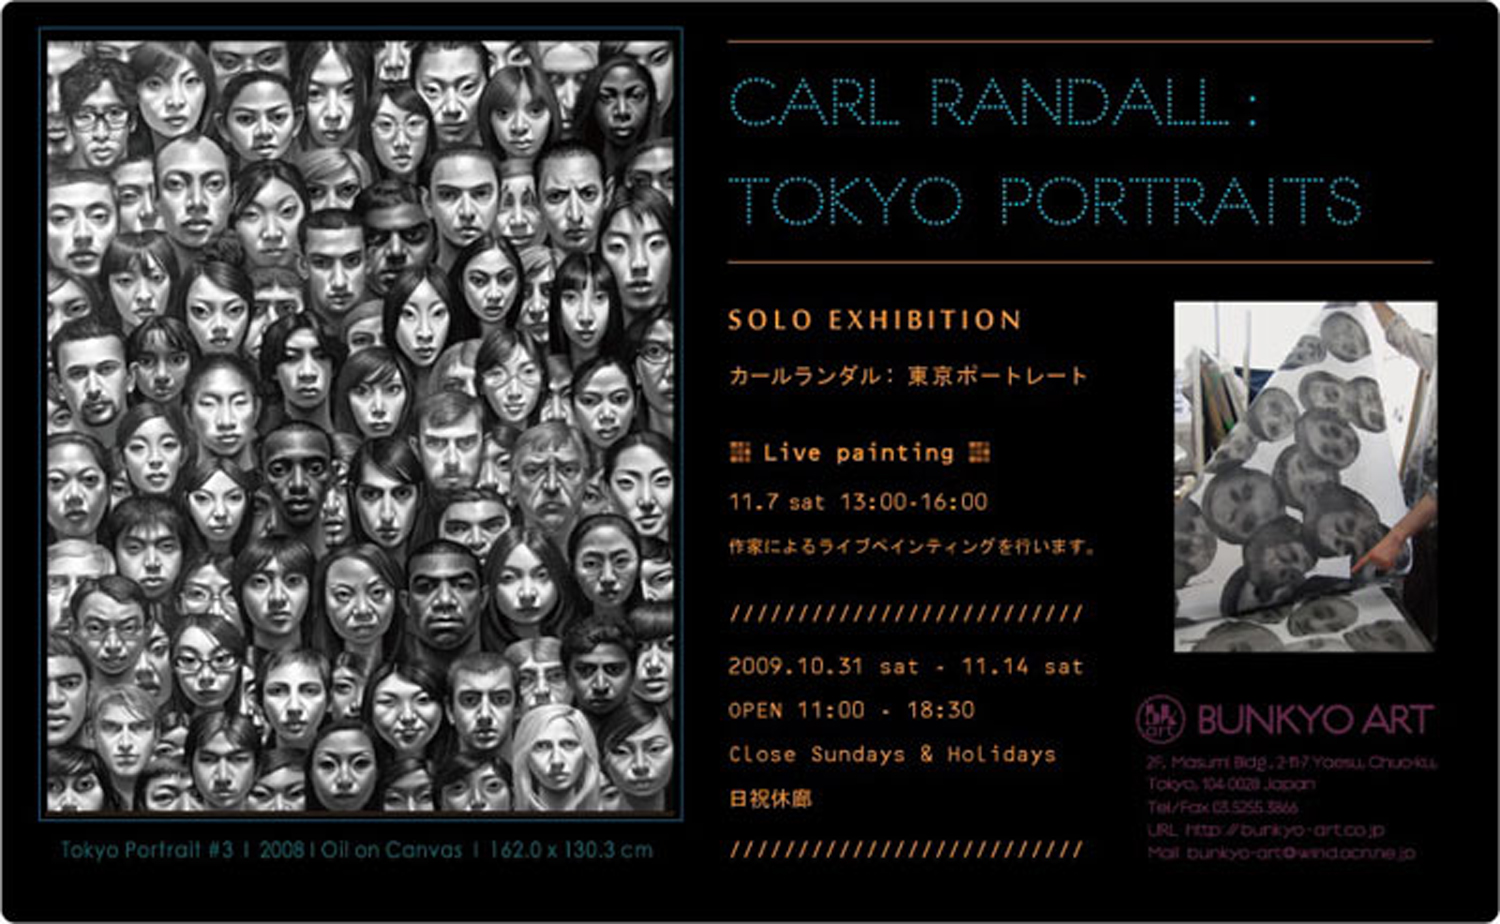 Carl Randall solo exhibition.